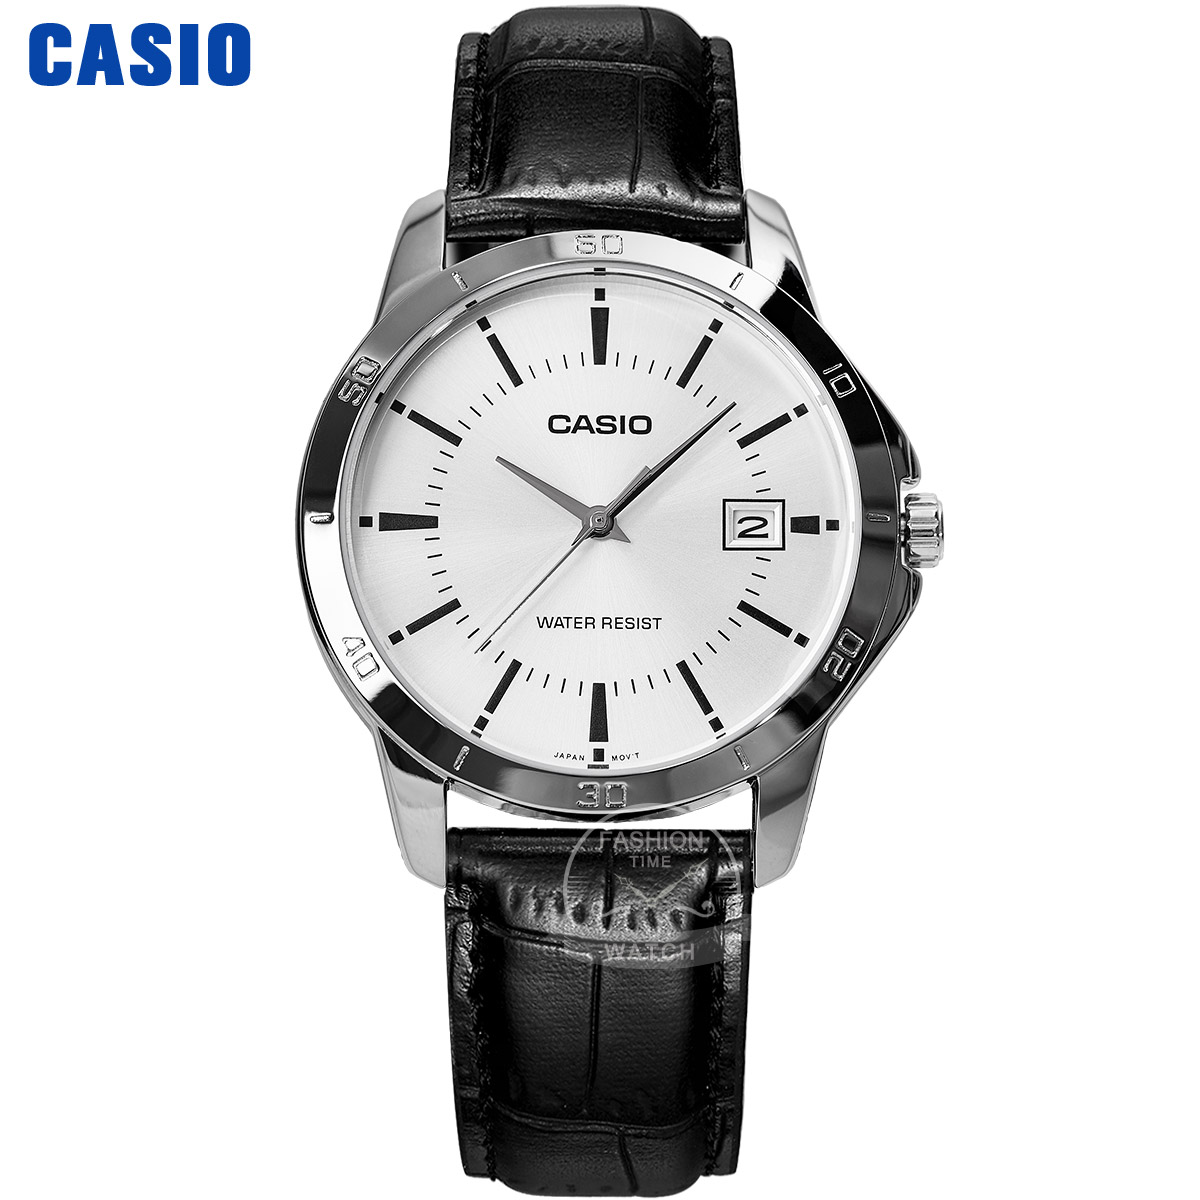 Casio Watch New Watch Men Top Brand Luxury Set Quartz Watche Military Men Clock 30m Waterproof Men Watch Sport Wrist Watch Reloj